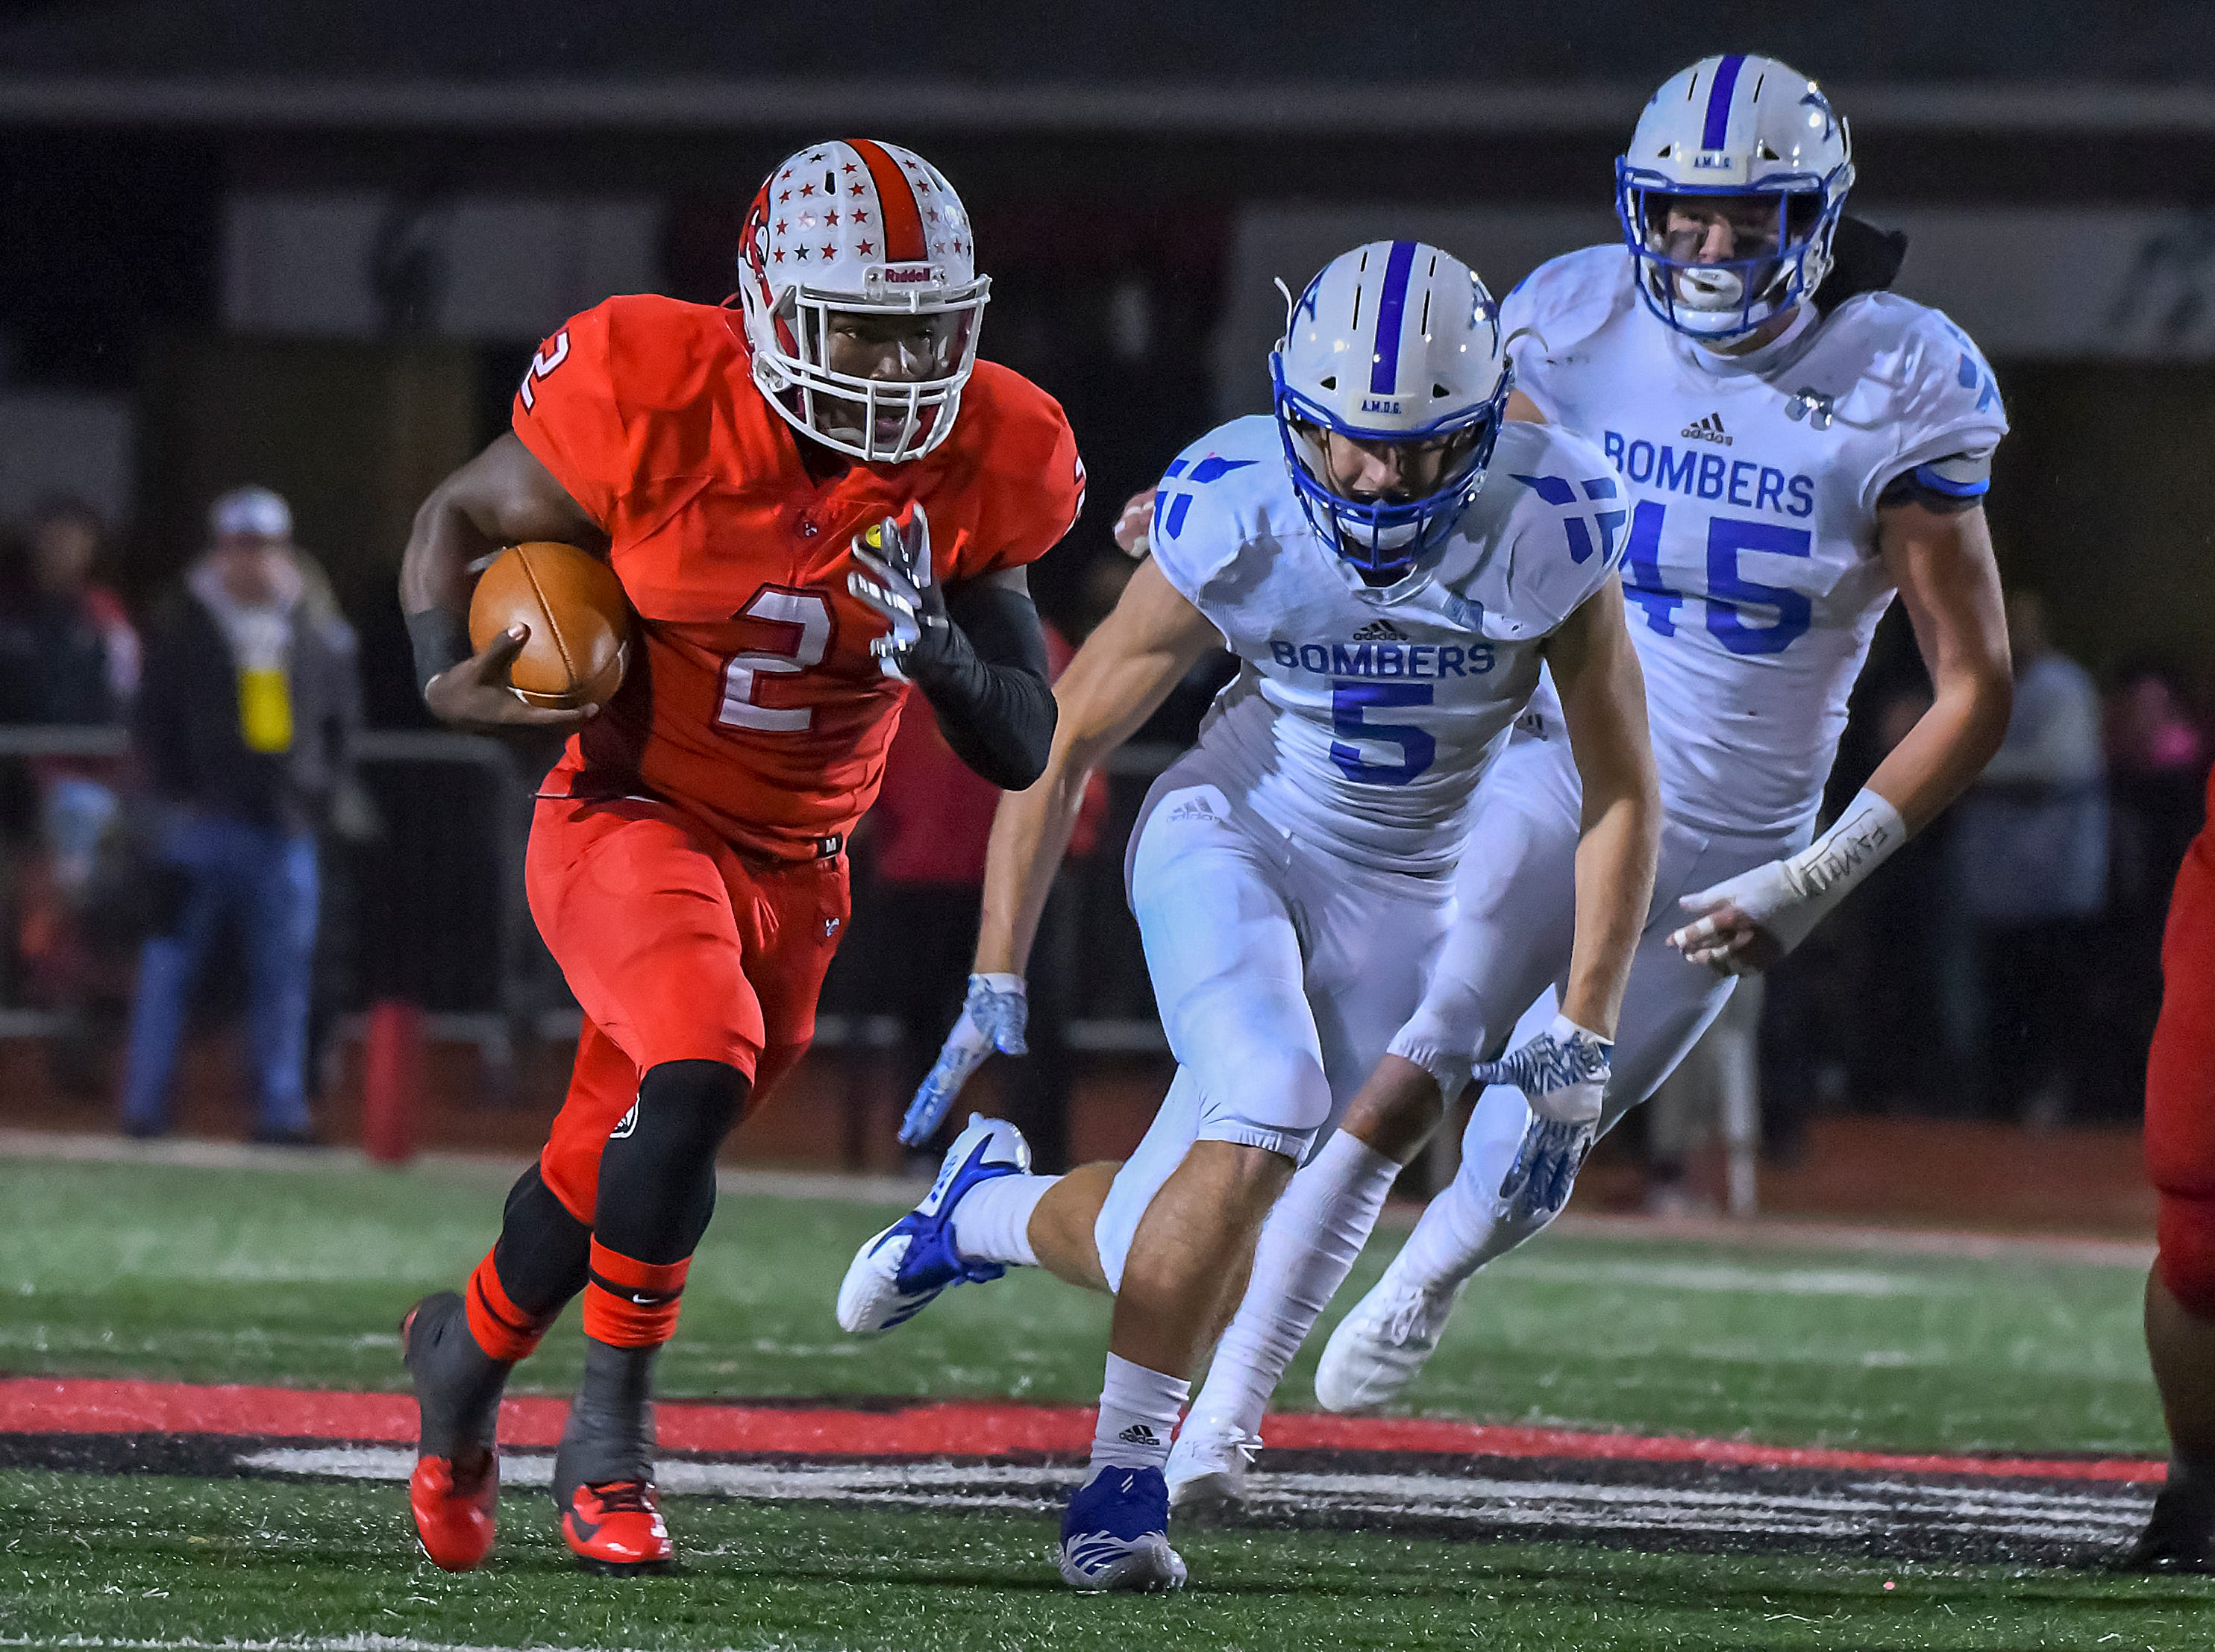 Deante Smith-Moore (2) of Colerain runs the football against St. X in the OHSAA DI Region 4 Playoffs at Colerain High School,  Friday Nov. 2, 2018